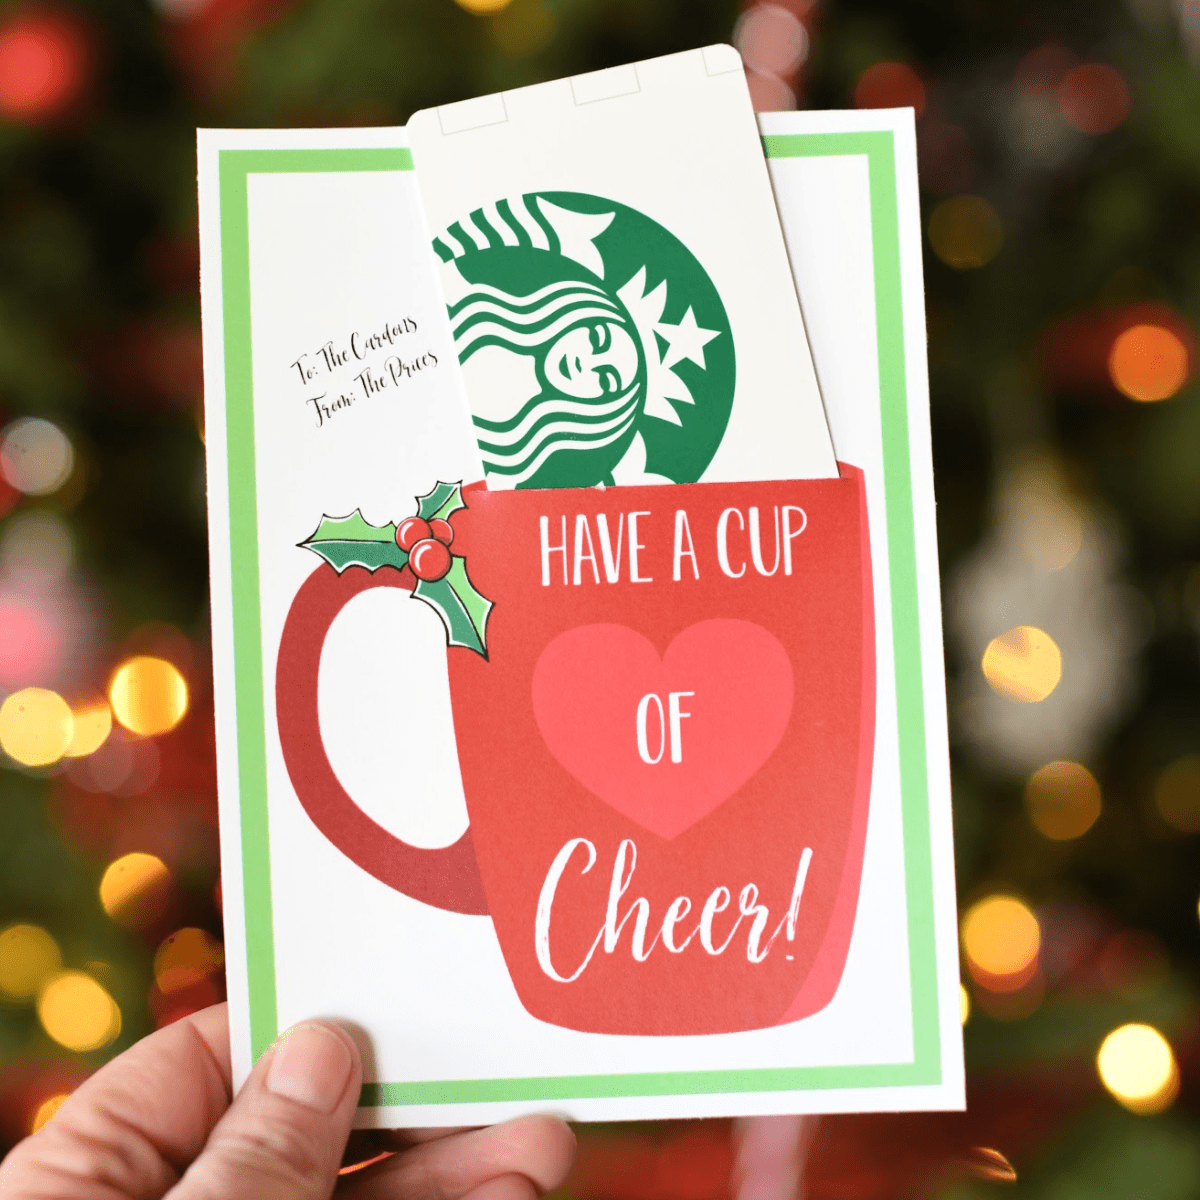 Starbucks Christmas Gift Cards 2020 Cup of Cheer Holiday Gift Idea in 2020 | Christmas gift card